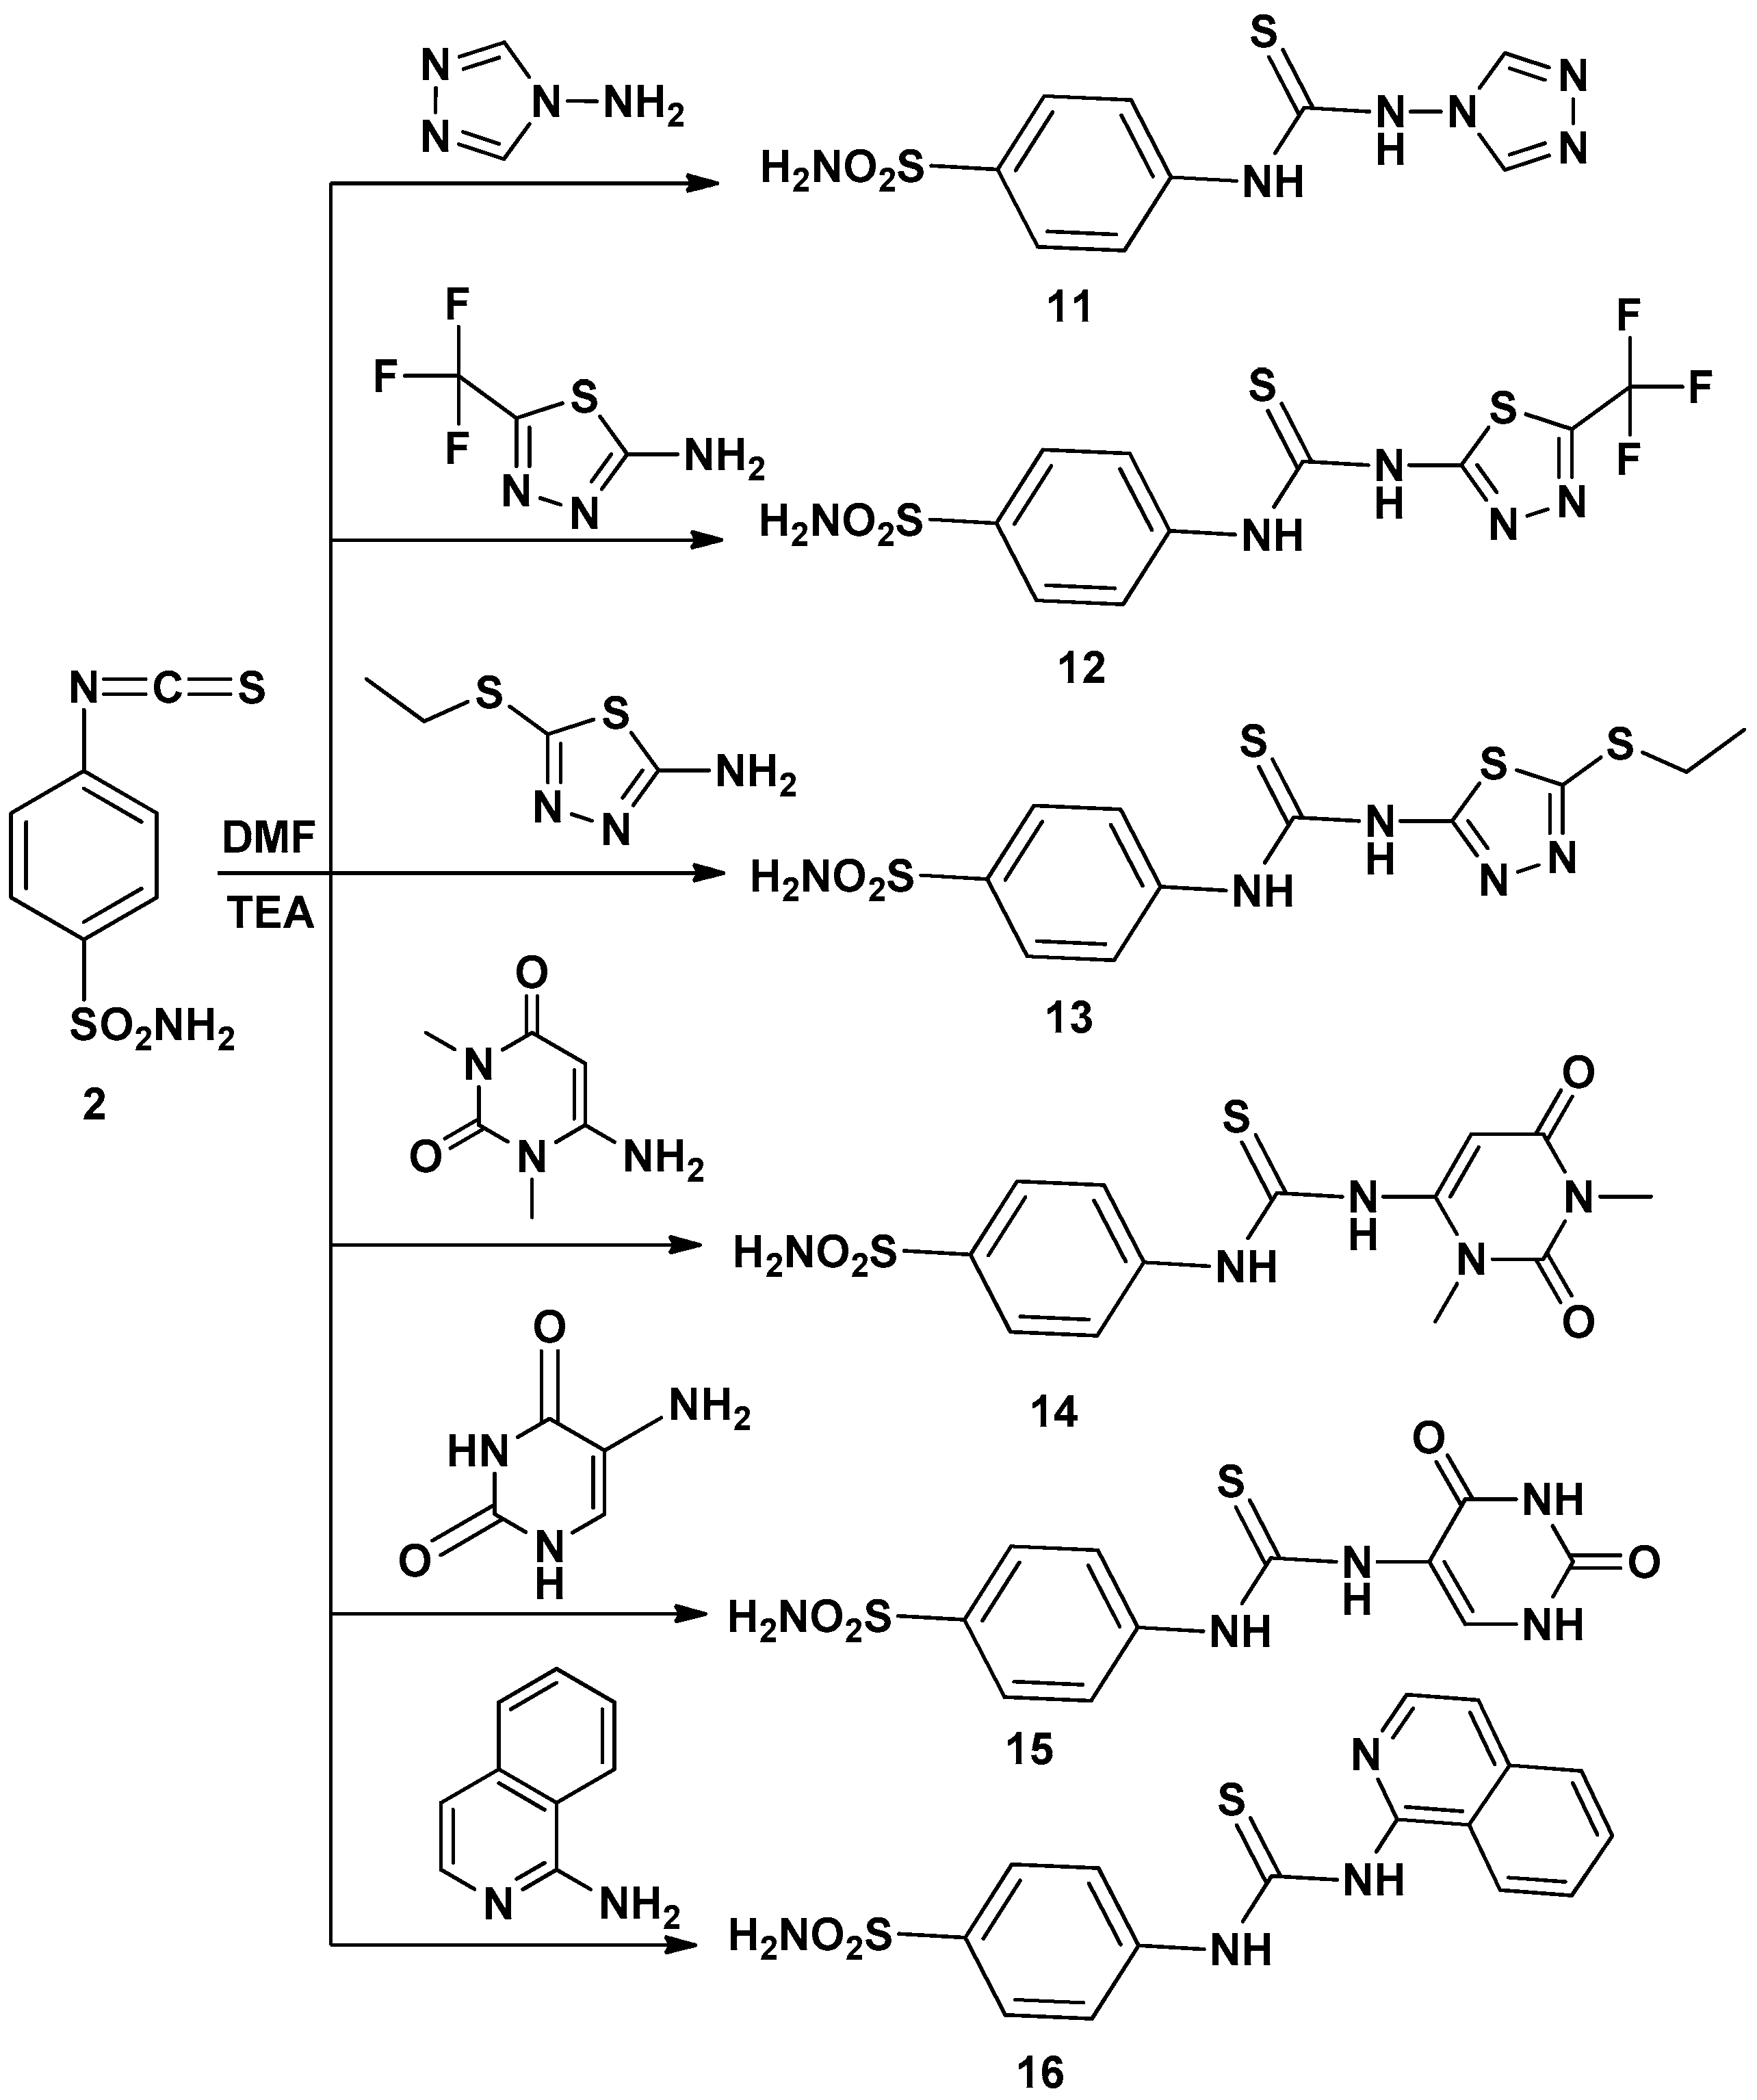 anti cancer activity of some novel quinazoline derivatives Zhongze, h yoshio, n taro and c yingjie, novel quinazoline-quinoline alkaloids with  synthesis and biological screening of some novel quinoline derivatives, pharma  m s alsaid and y m nissan, dapson in heterocyclic chemistry, part v: synthesis, molecular docking and anticancer activity of some novel sulfonylbis-compounds.